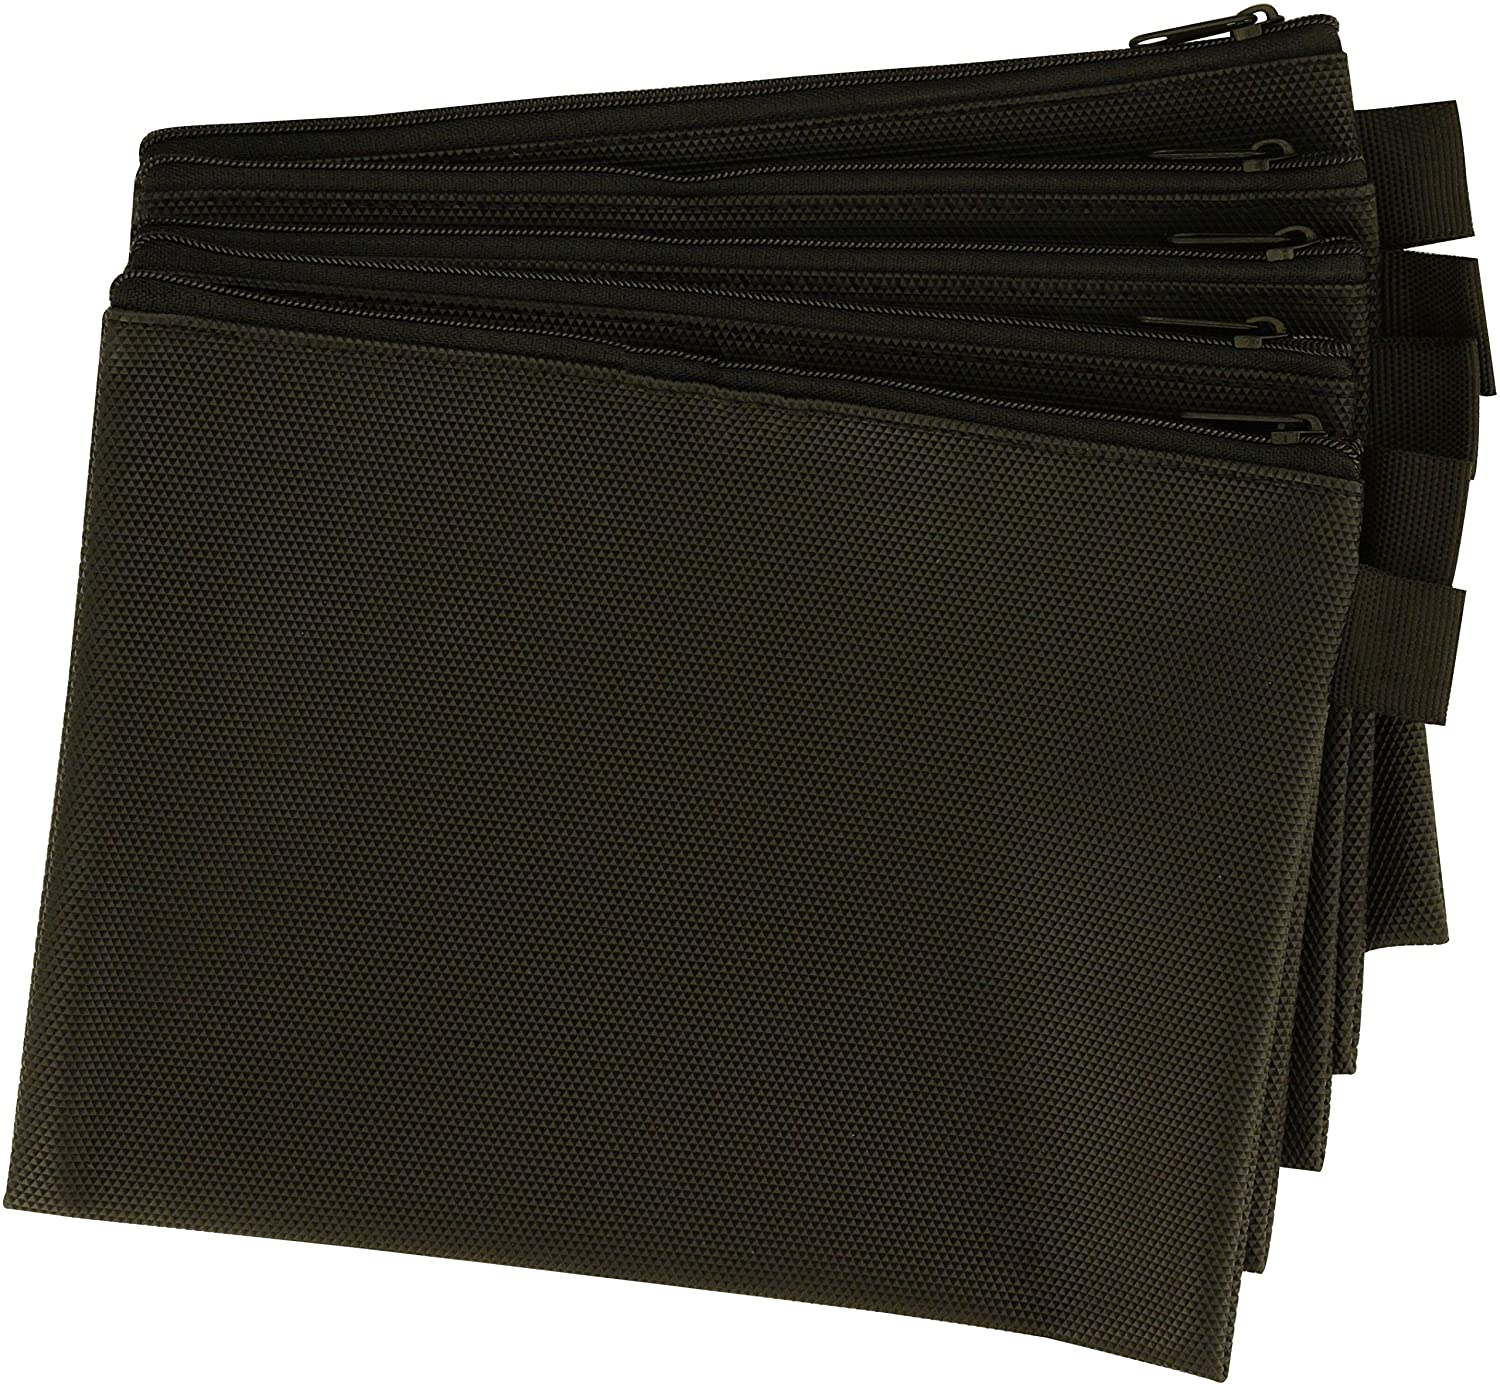 Zipper Bag - Set Of 5 - Carry All Pouch To Organize Travel Toiletries Pens Cosmetics (Black, 8 x 6 Inch)